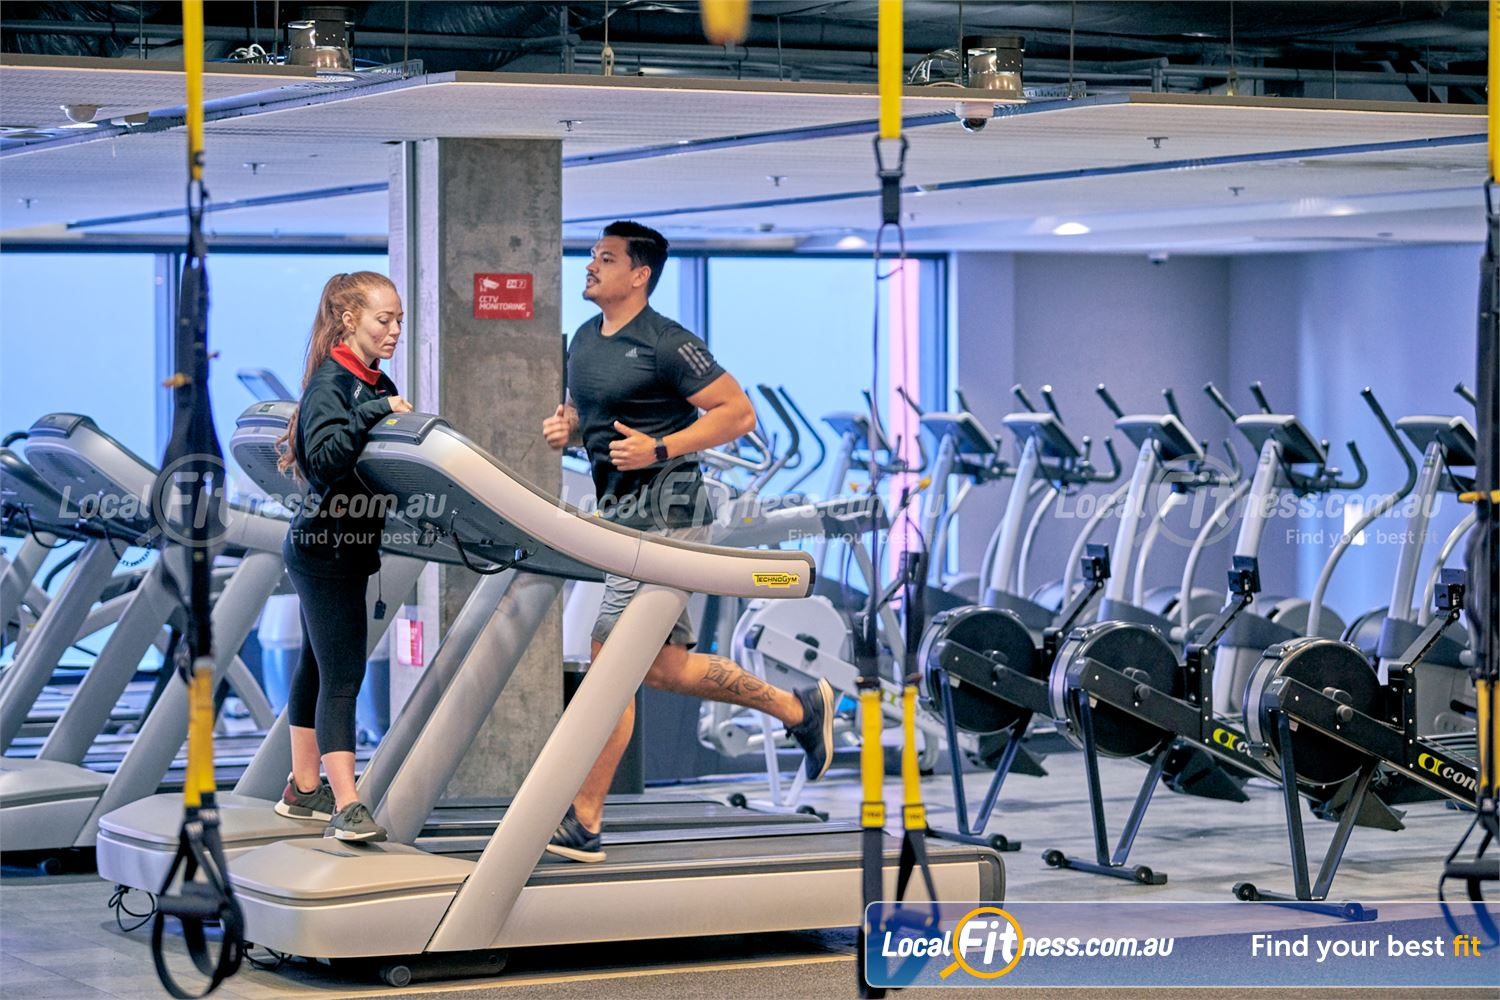 Fitness First Carlingford Our Carlingford gym includes a state of the art cardio theatre.